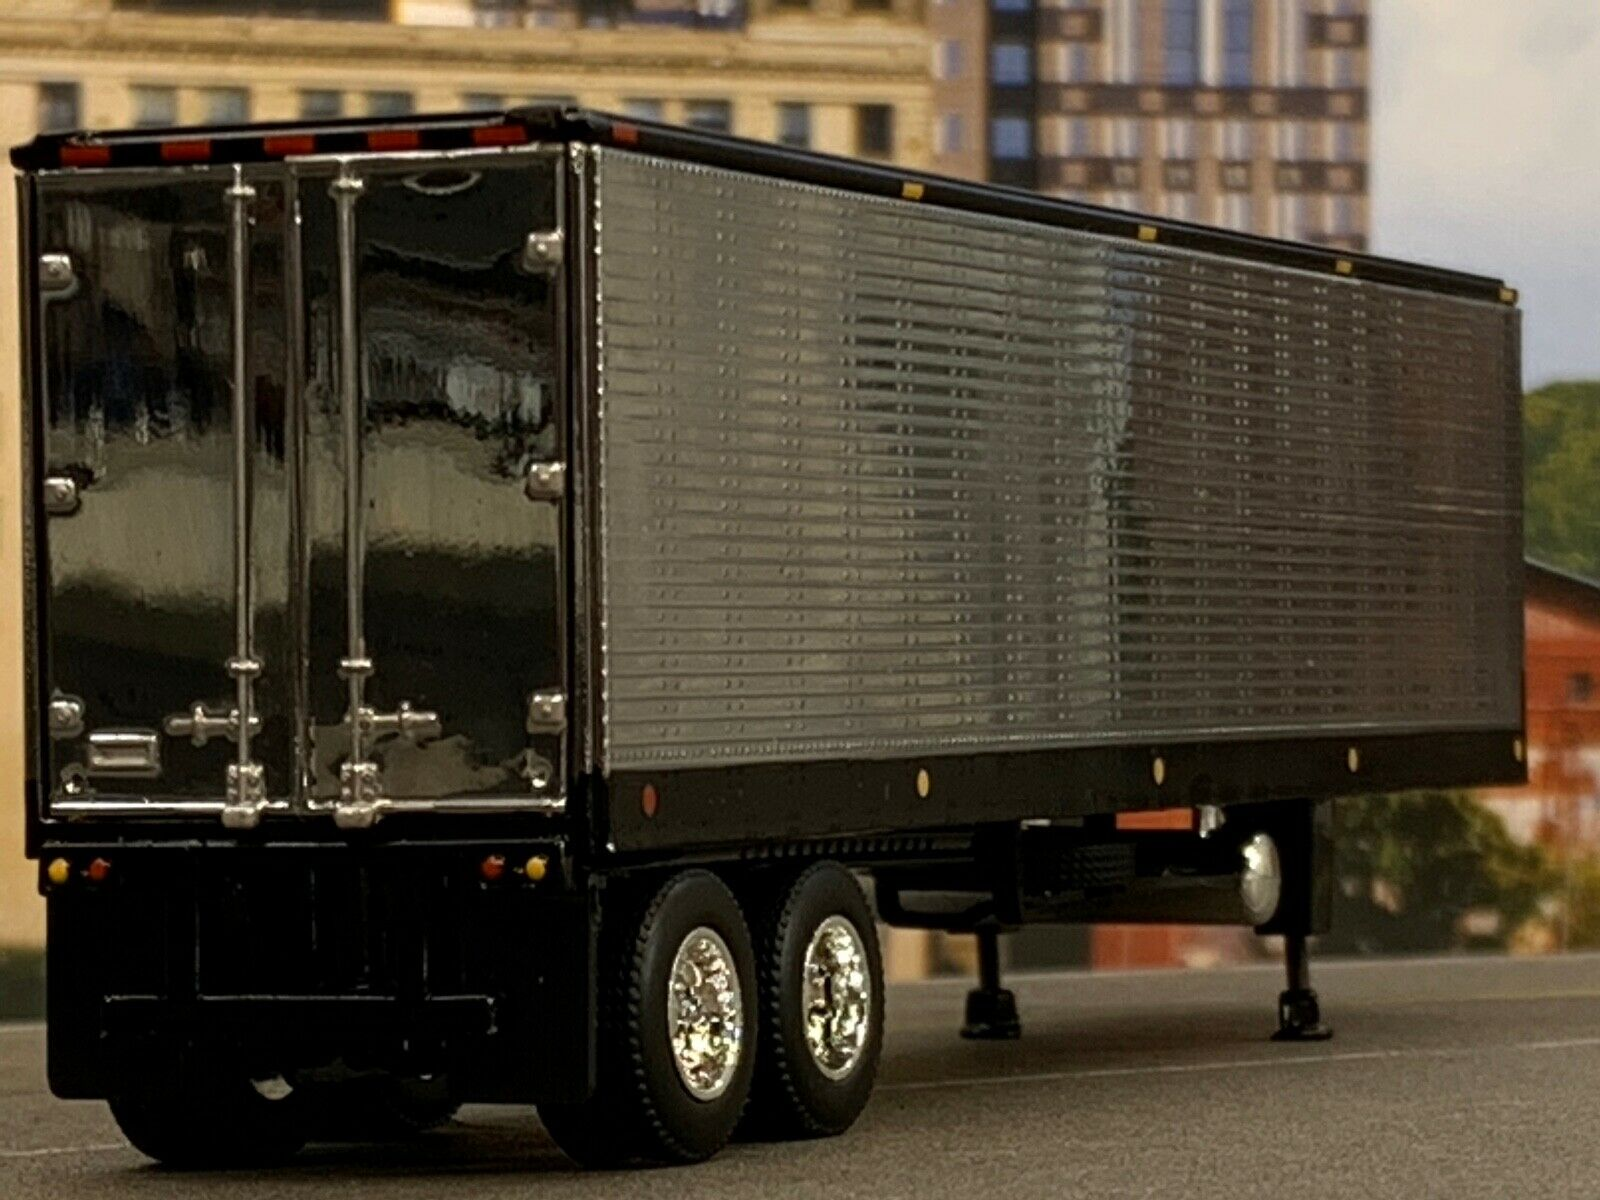 1/64 DCP BLACK/CHROME 40' VINTAGE TRAILER W/ THERMO KING REEFER UNIT